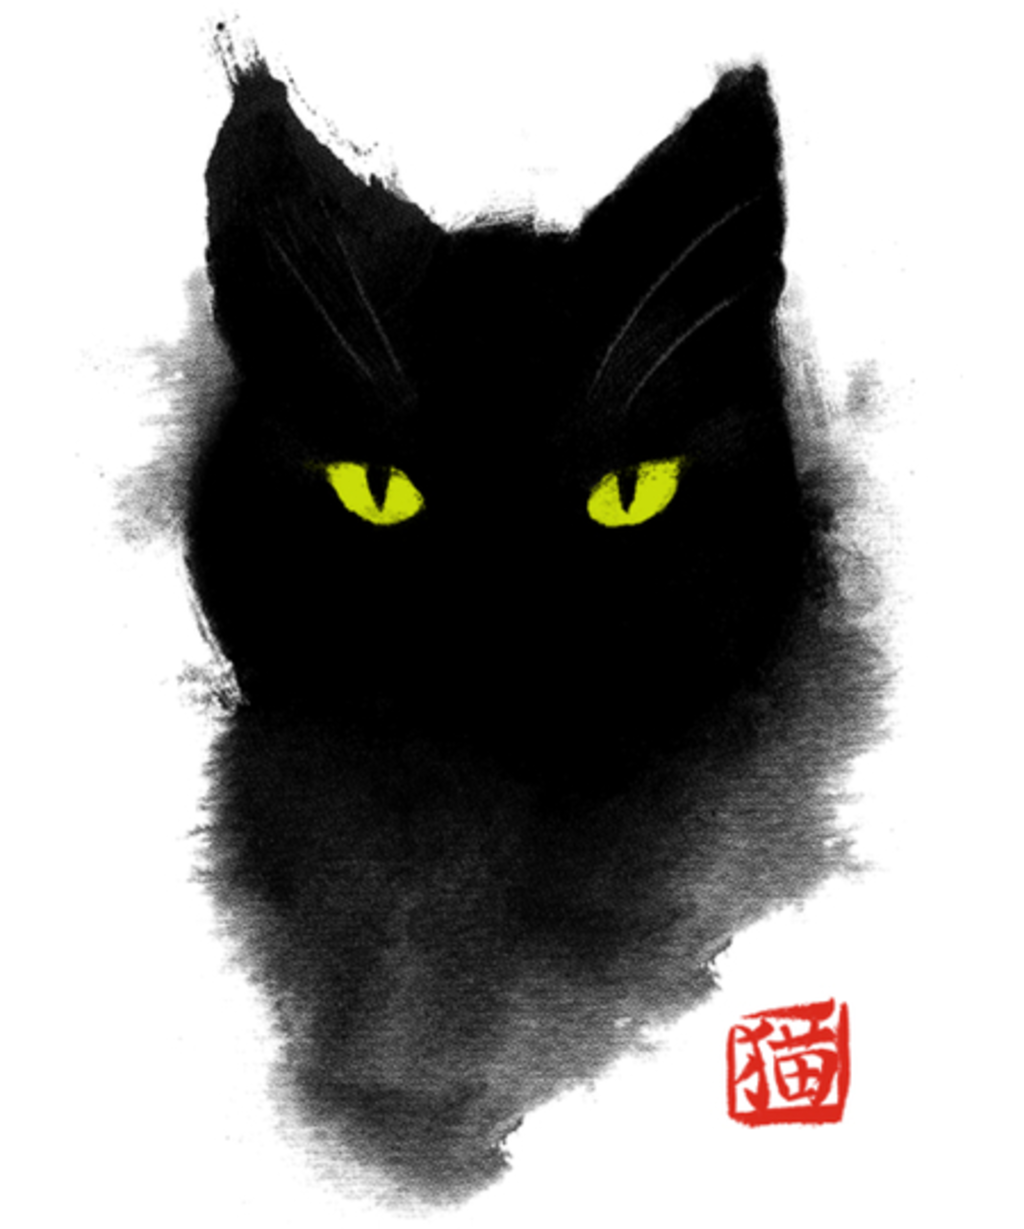 Qwertee: Cat ink